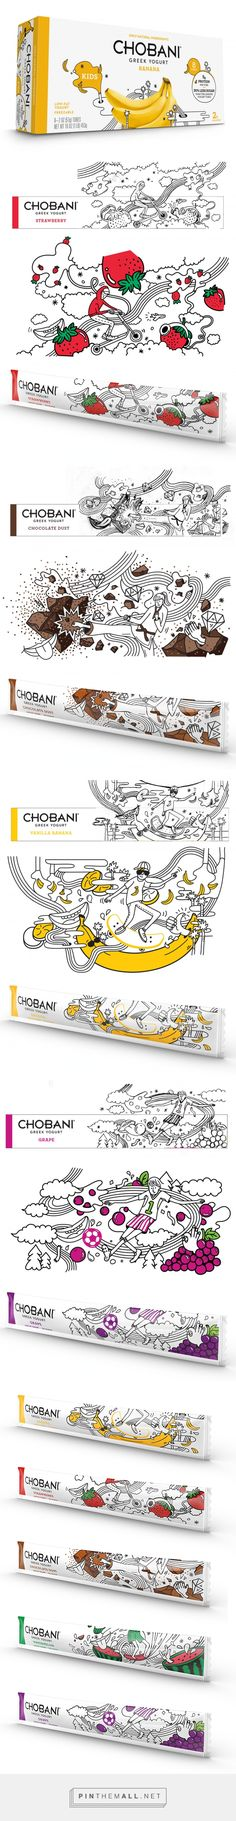 Chobani Yogurt Kids — The Dieline - Branding & Packaging - created via http://pinthemall.net